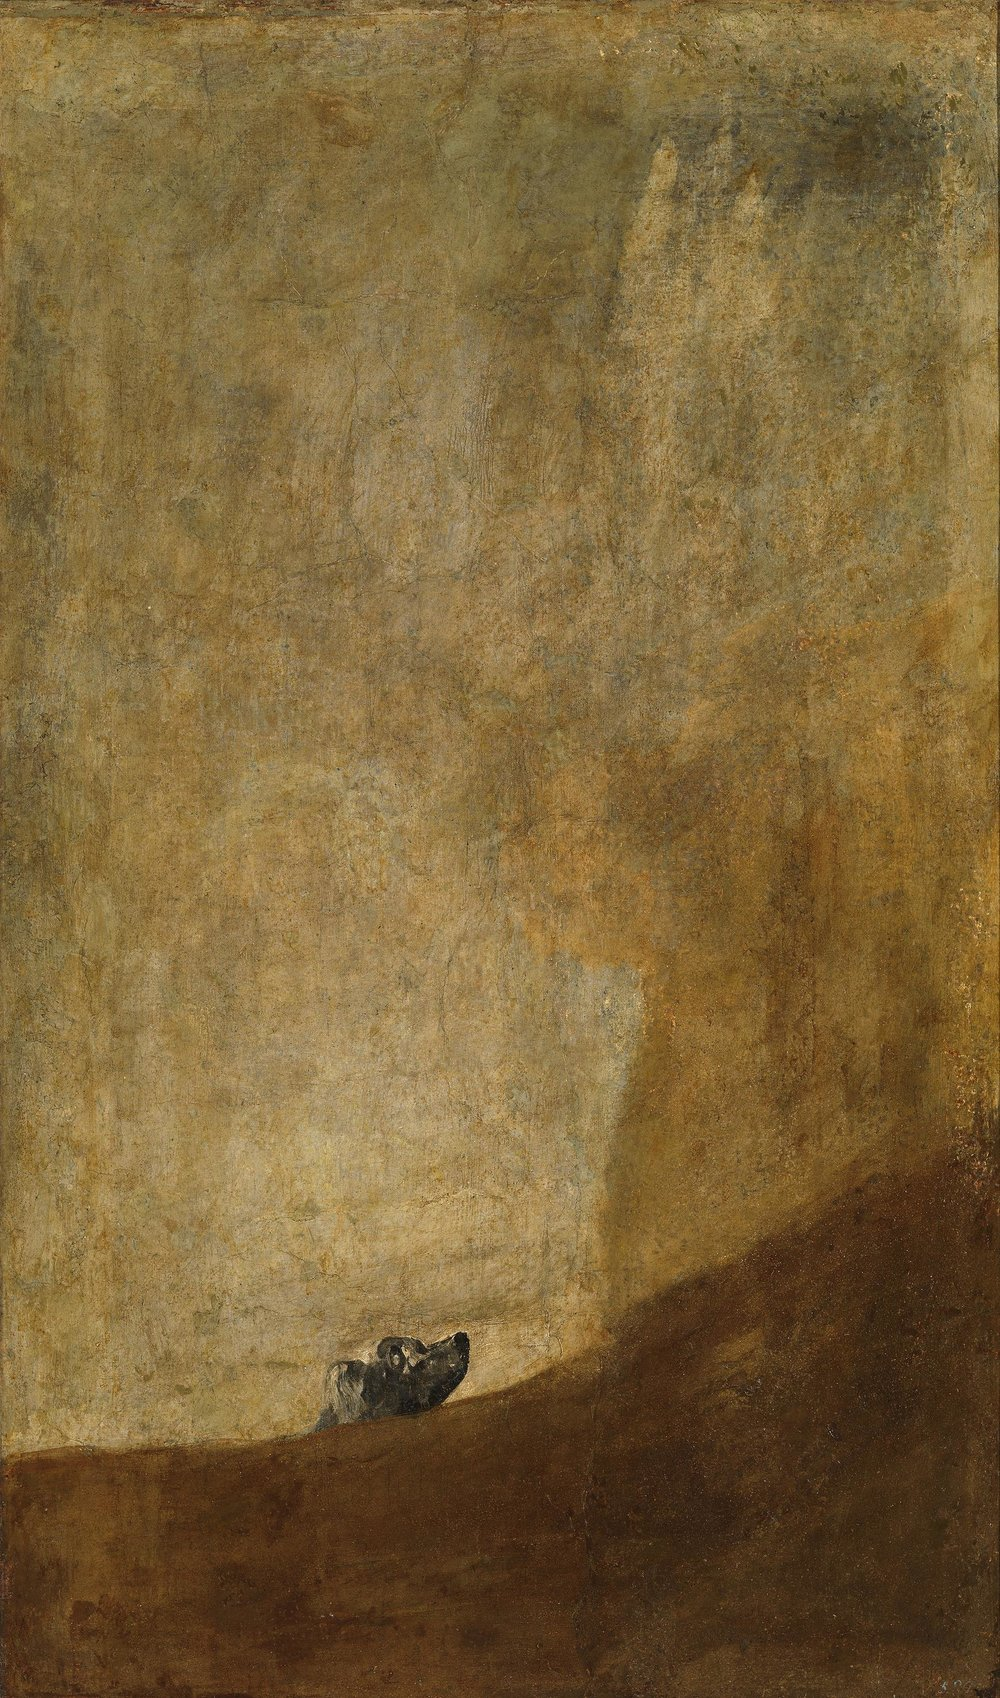 Francisco Goya - The Dog